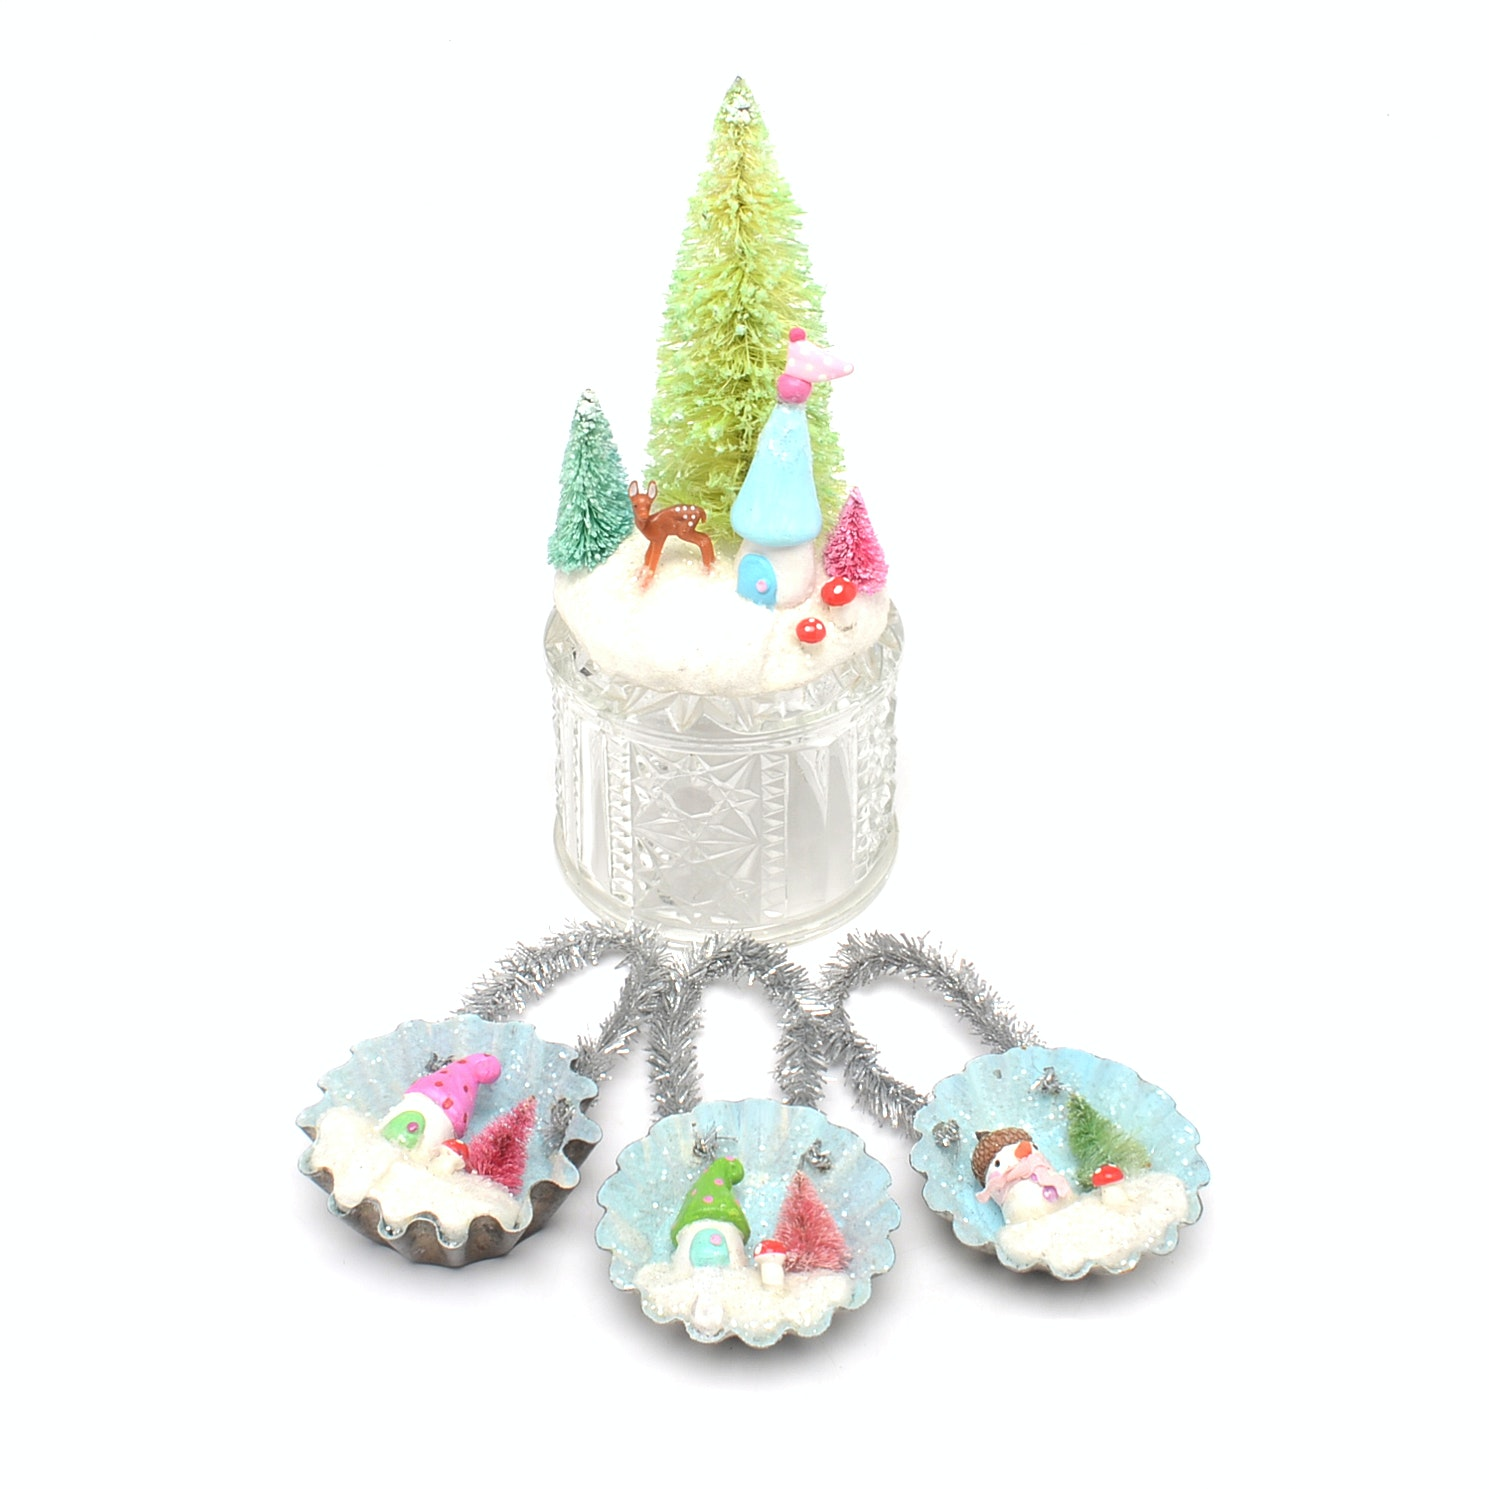 Artisan Crafted Christmas Decor and Ornaments